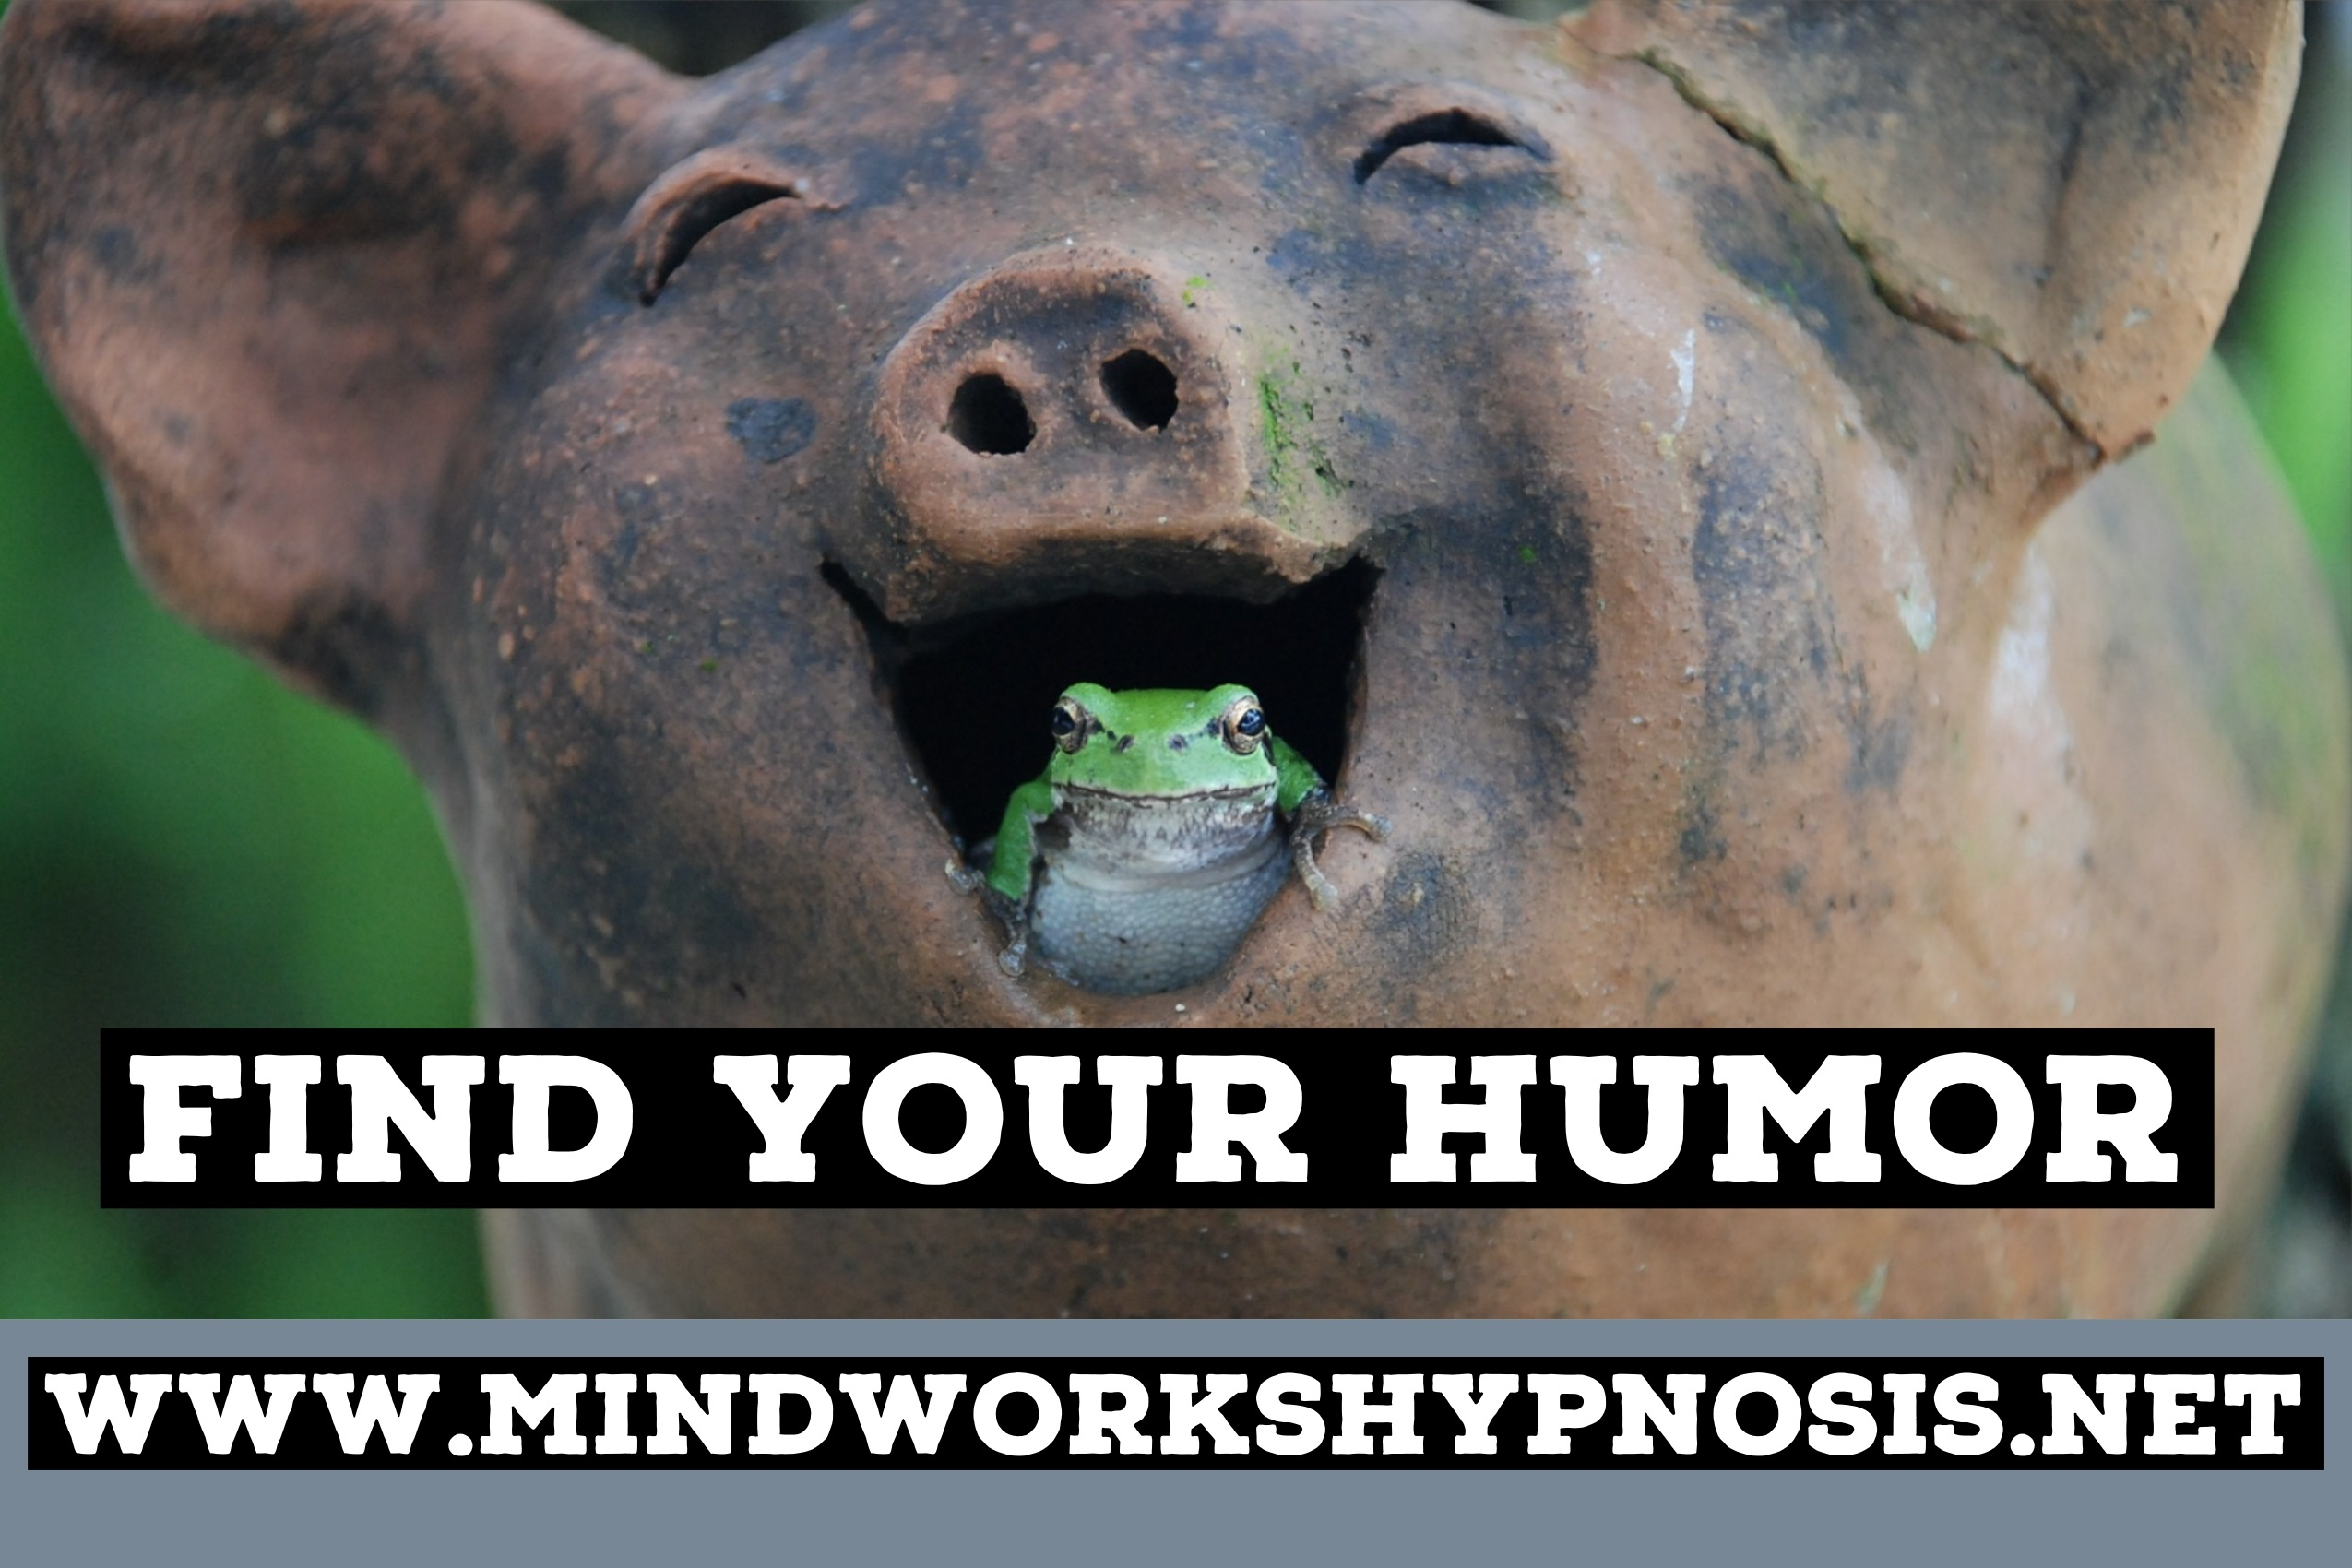 Find Your humor with Greater Seattle hypnotherapy clinic Mindworks Hypnosis & NLP.